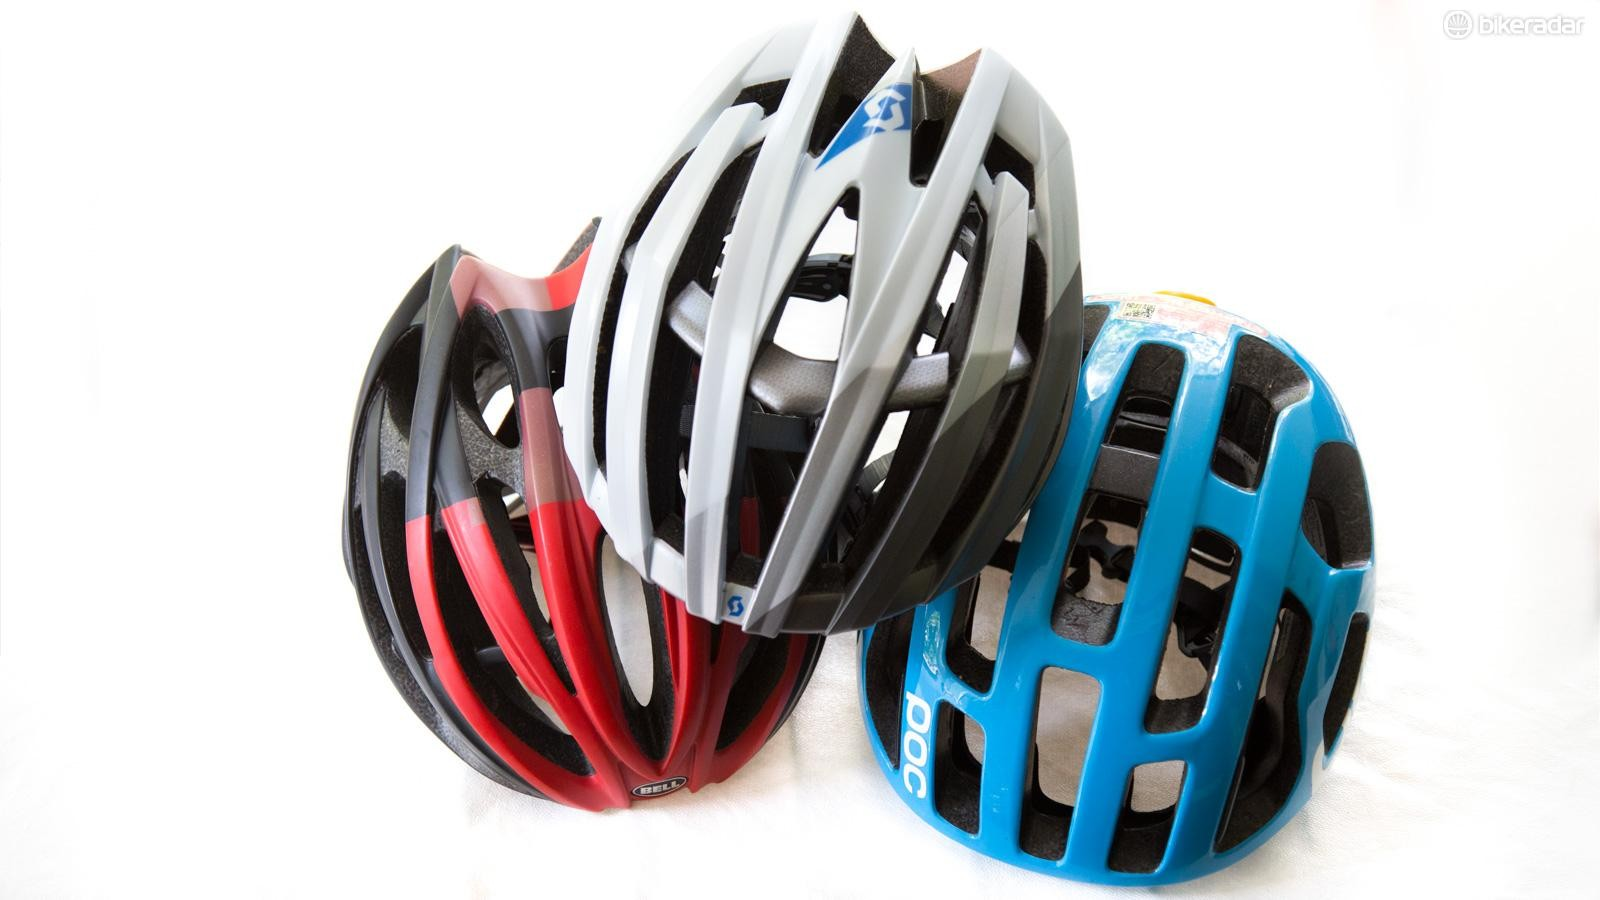 Two of these helmets are illegal to use in Australia. You may be surprised why